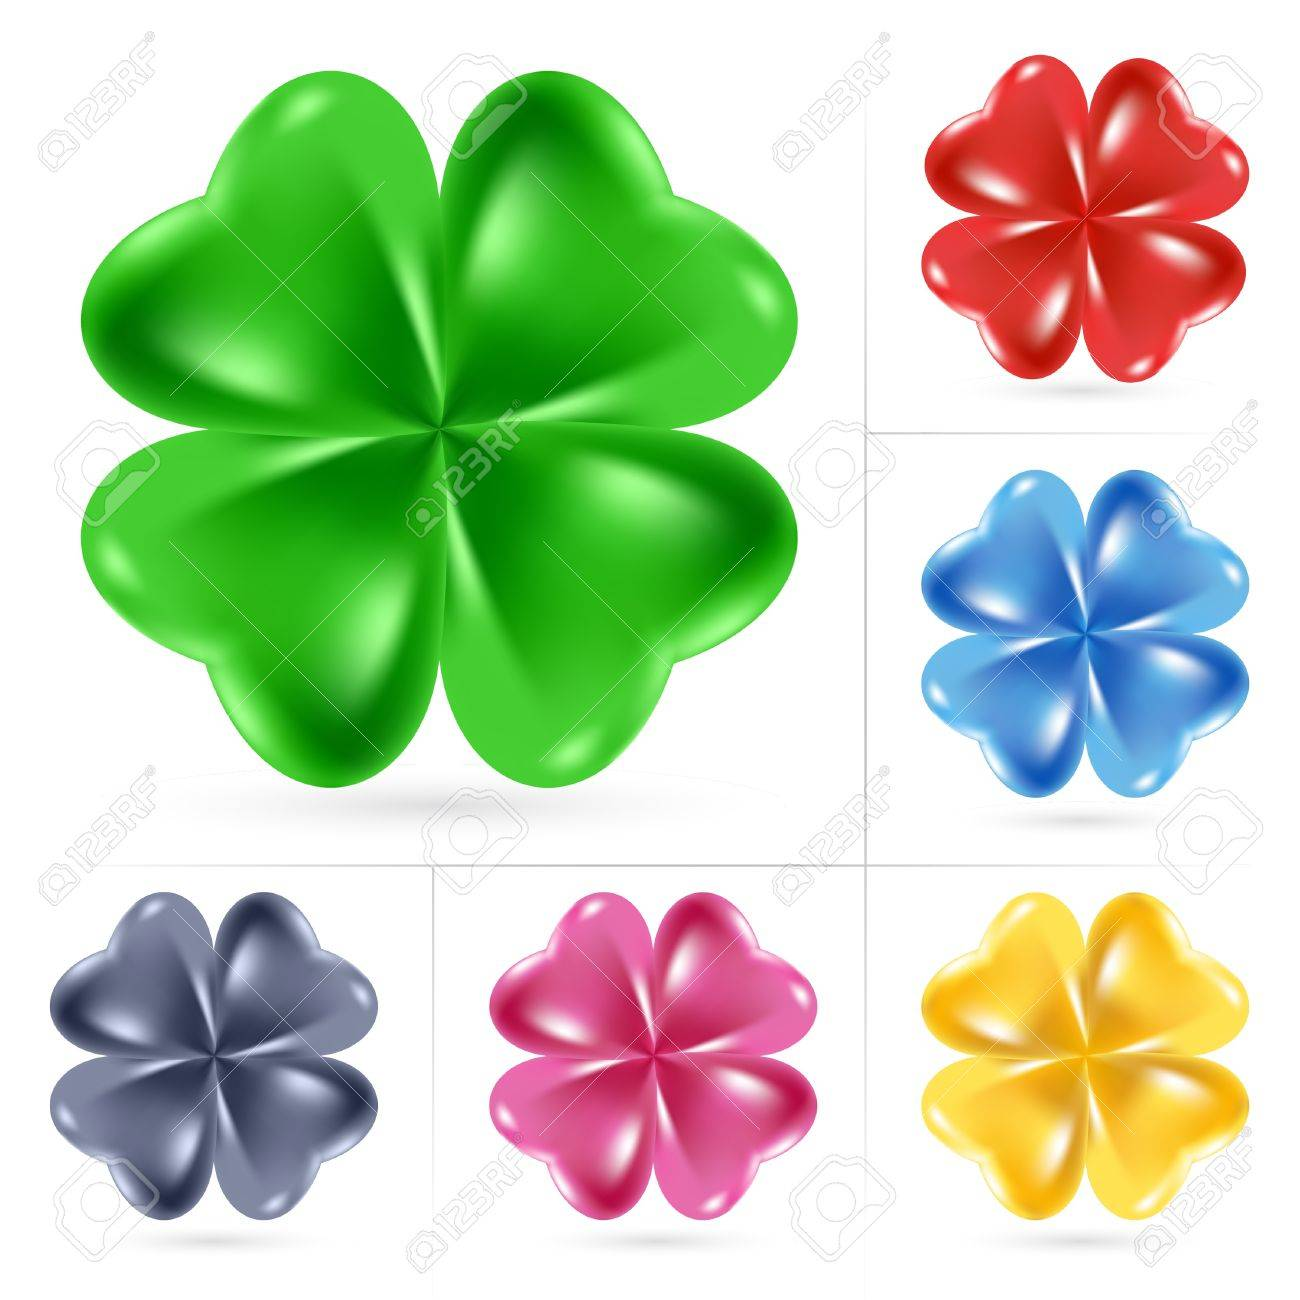 Set of Irish shamrock for St Patrick's Day Stock Vector - 8925221